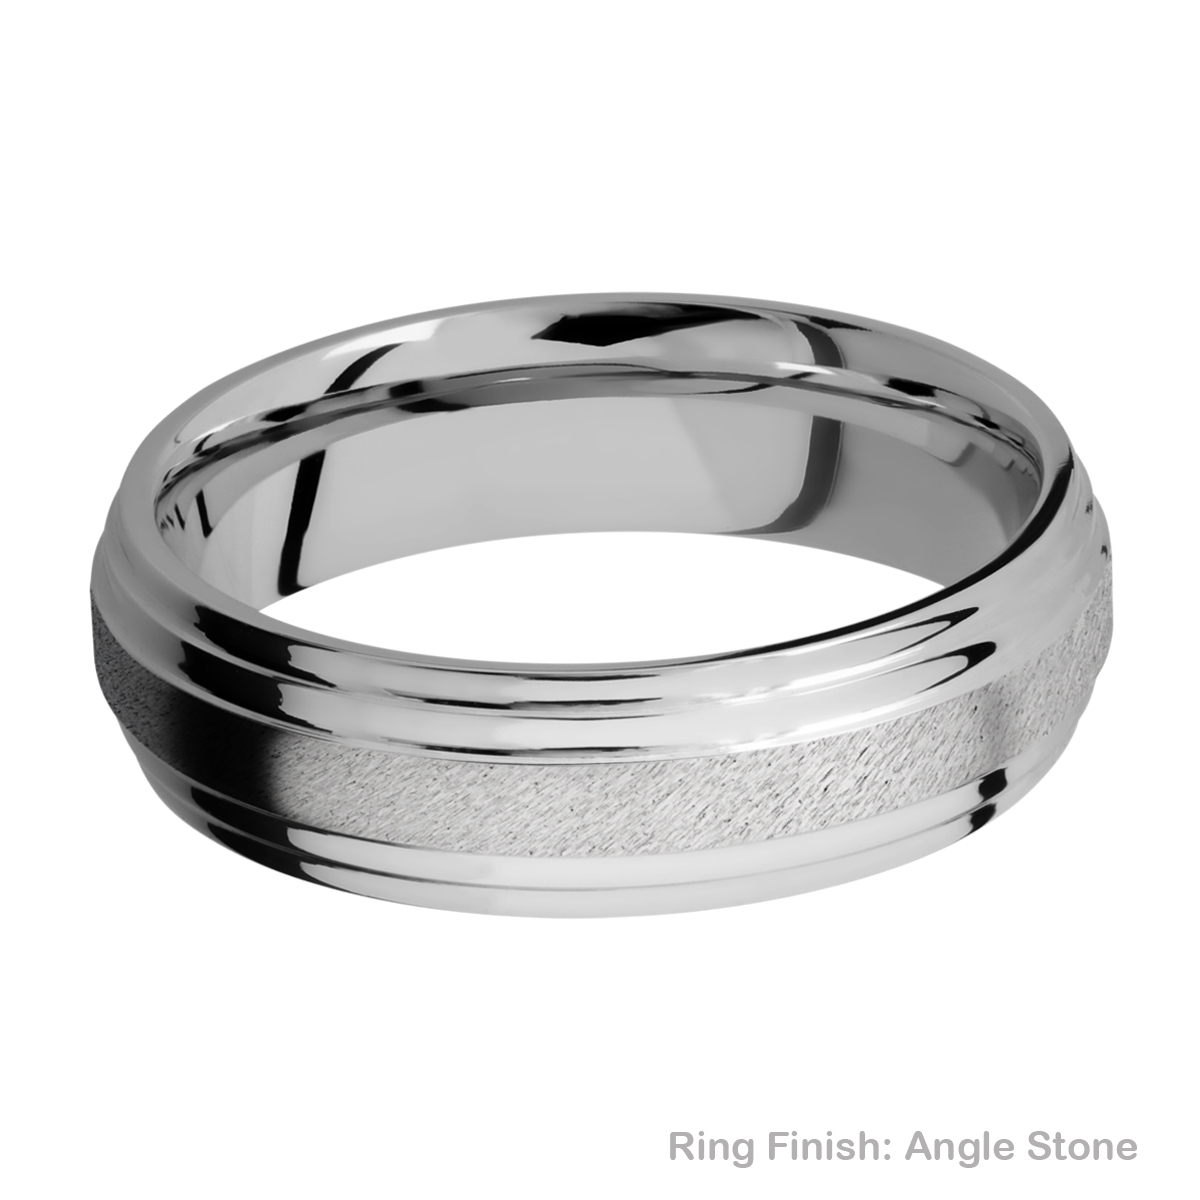 Lashbrook 6F2S Titanium Wedding Ring or Band Alternative View 9